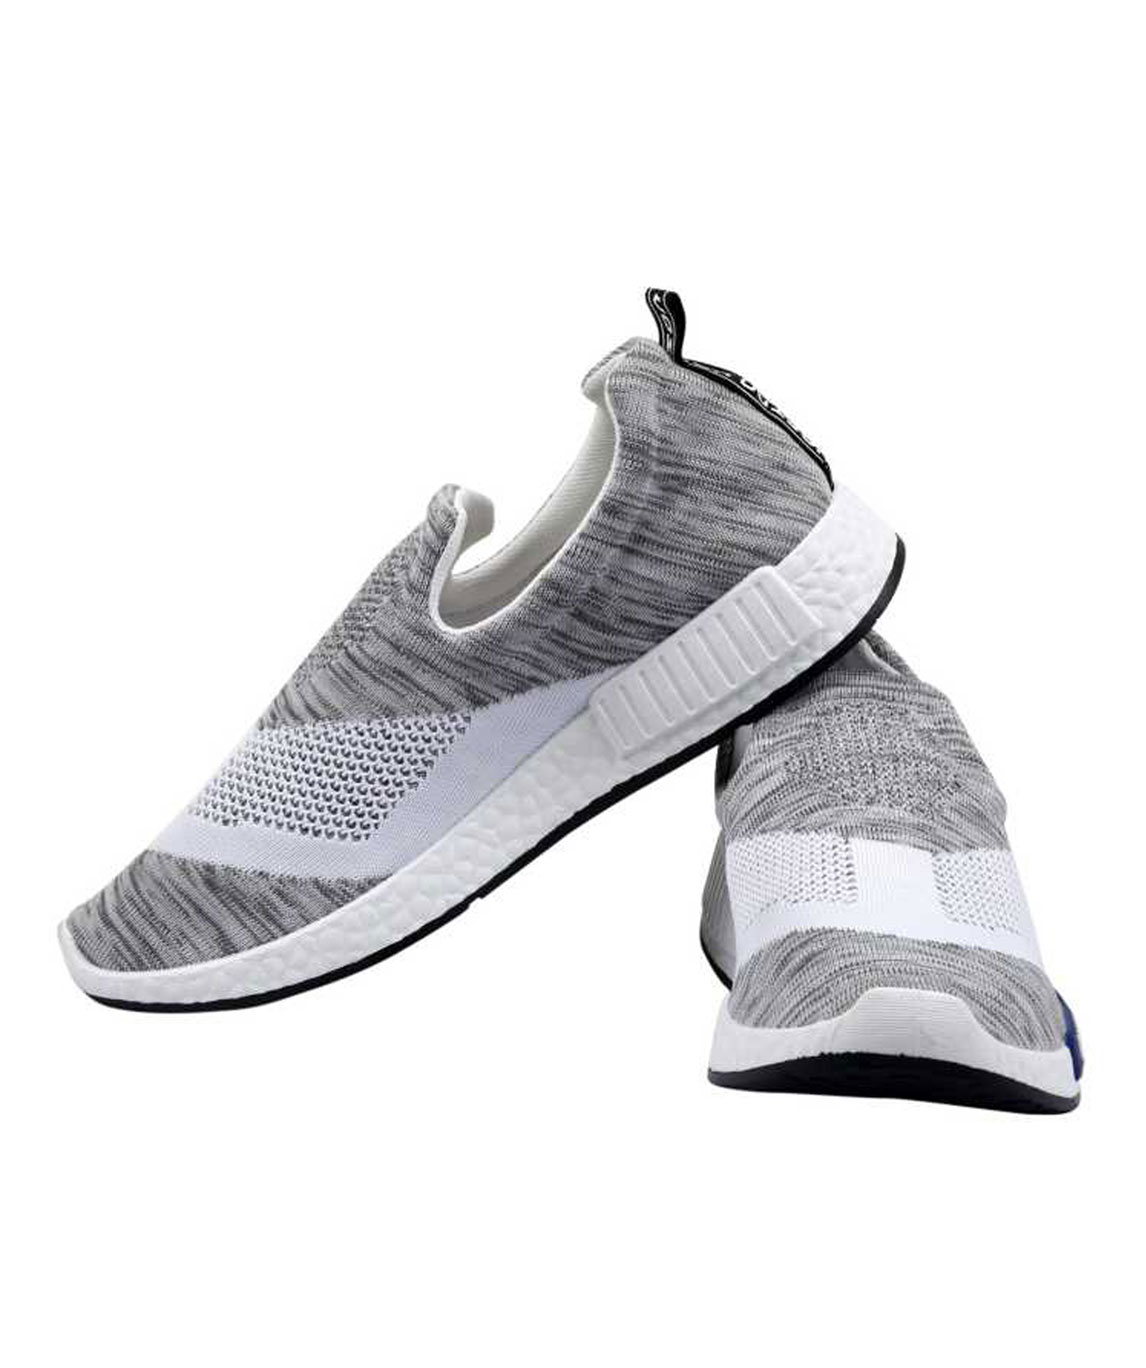 VOSTRO-HALE CASUAL   RUNNING   SPORT SHOES FOR MEN/BOYS(GREY)